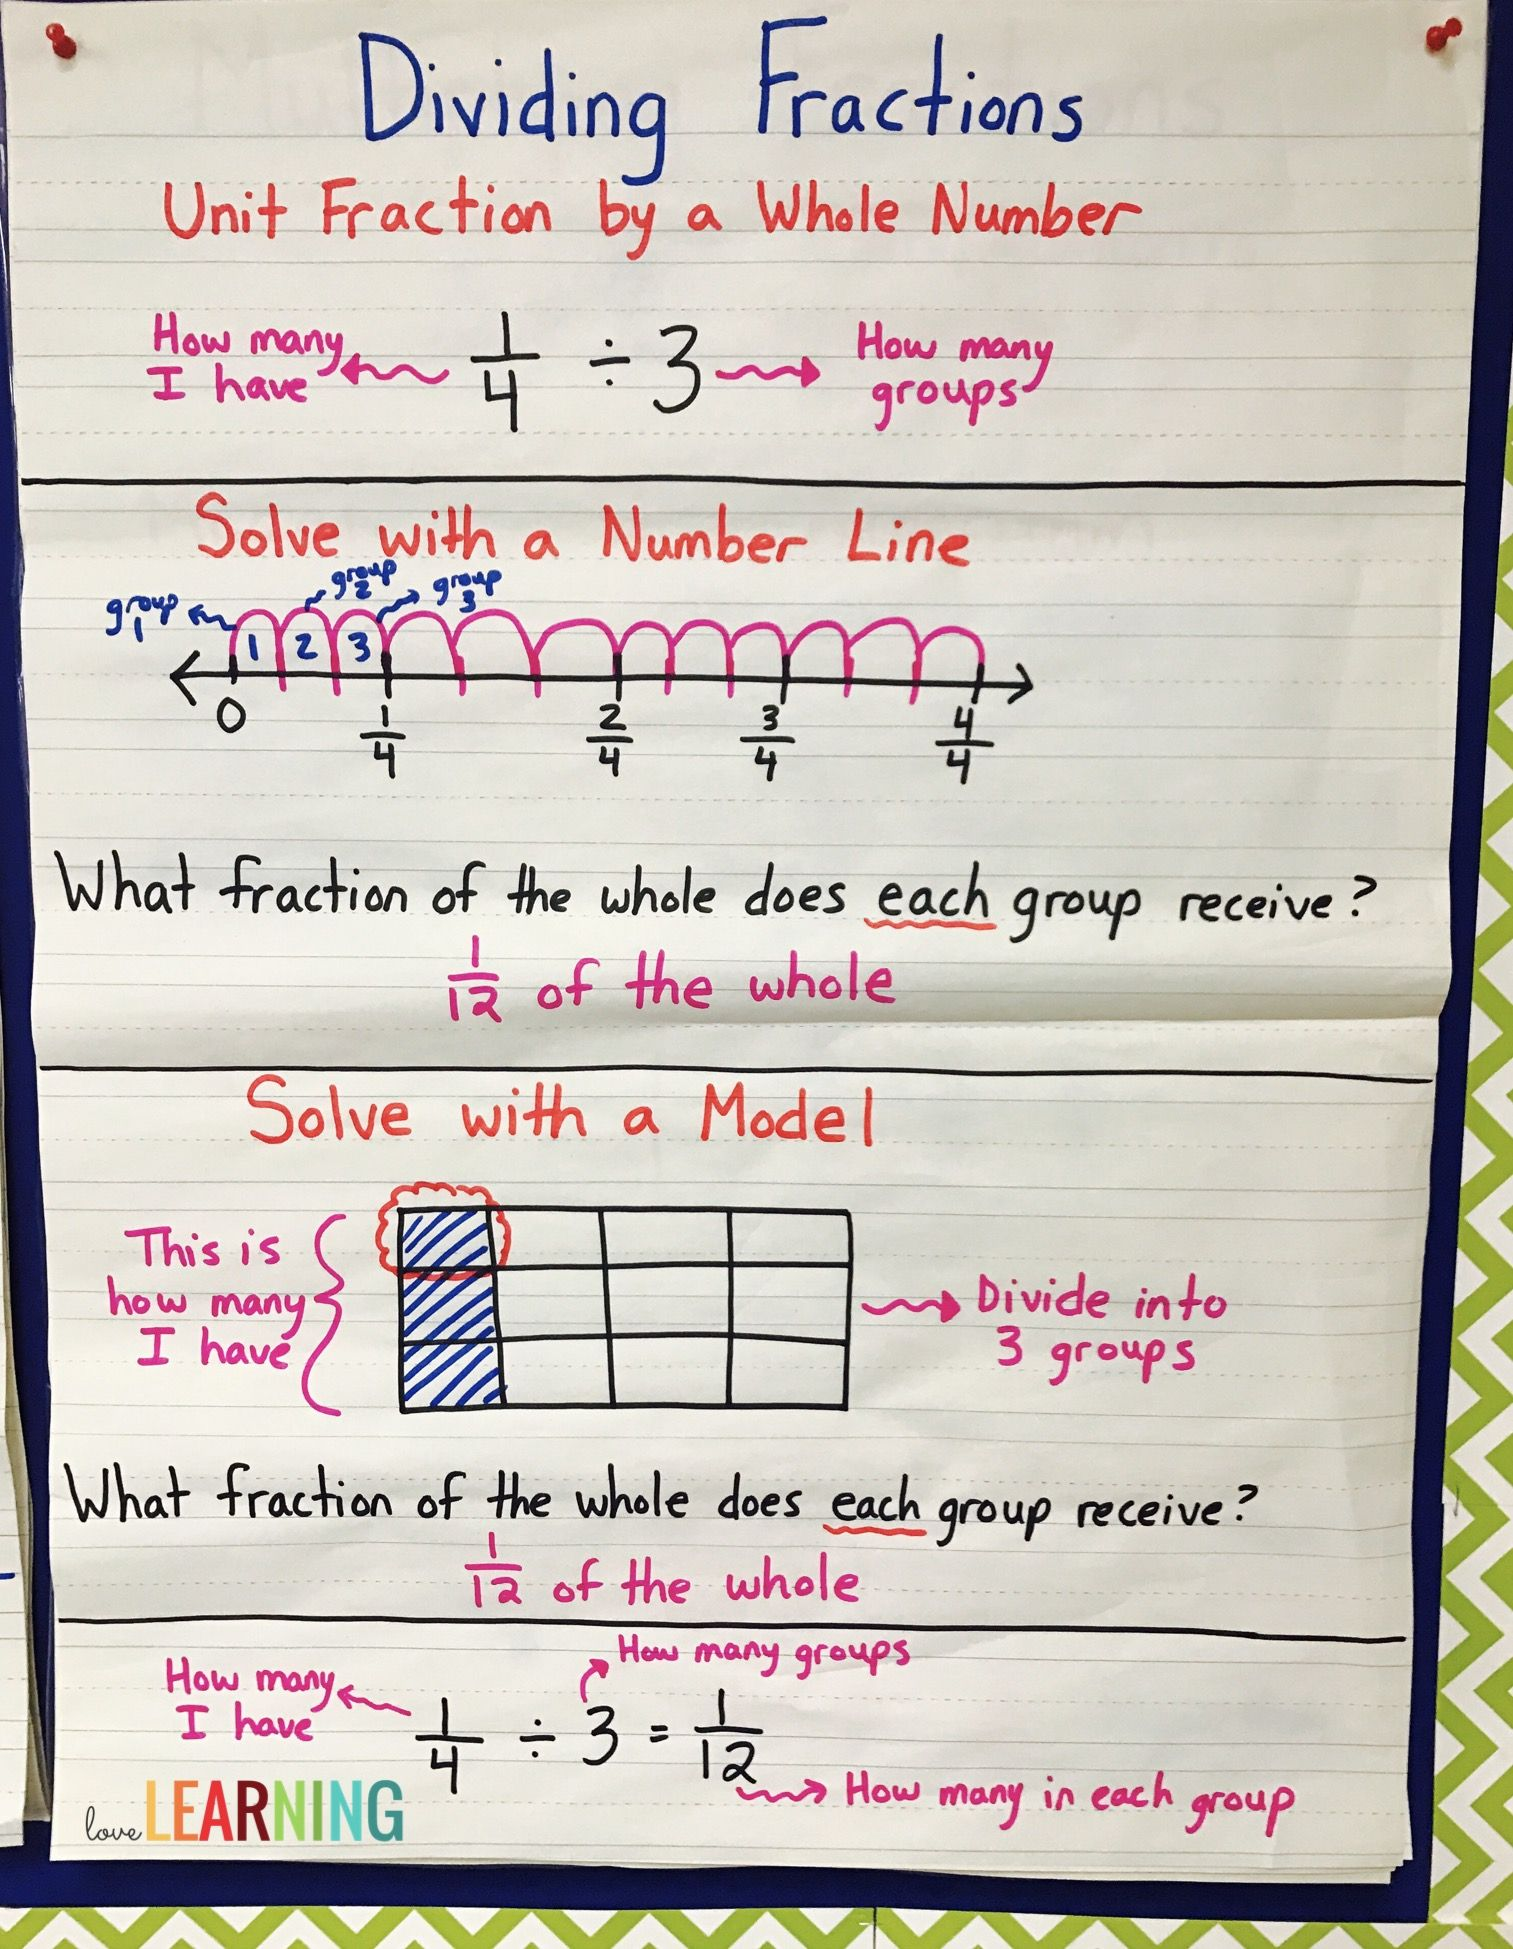 Divide A Unit Fraction By Whole Number Anchor Chart I Use This As Visual To Show My Students How Fractions Using Line